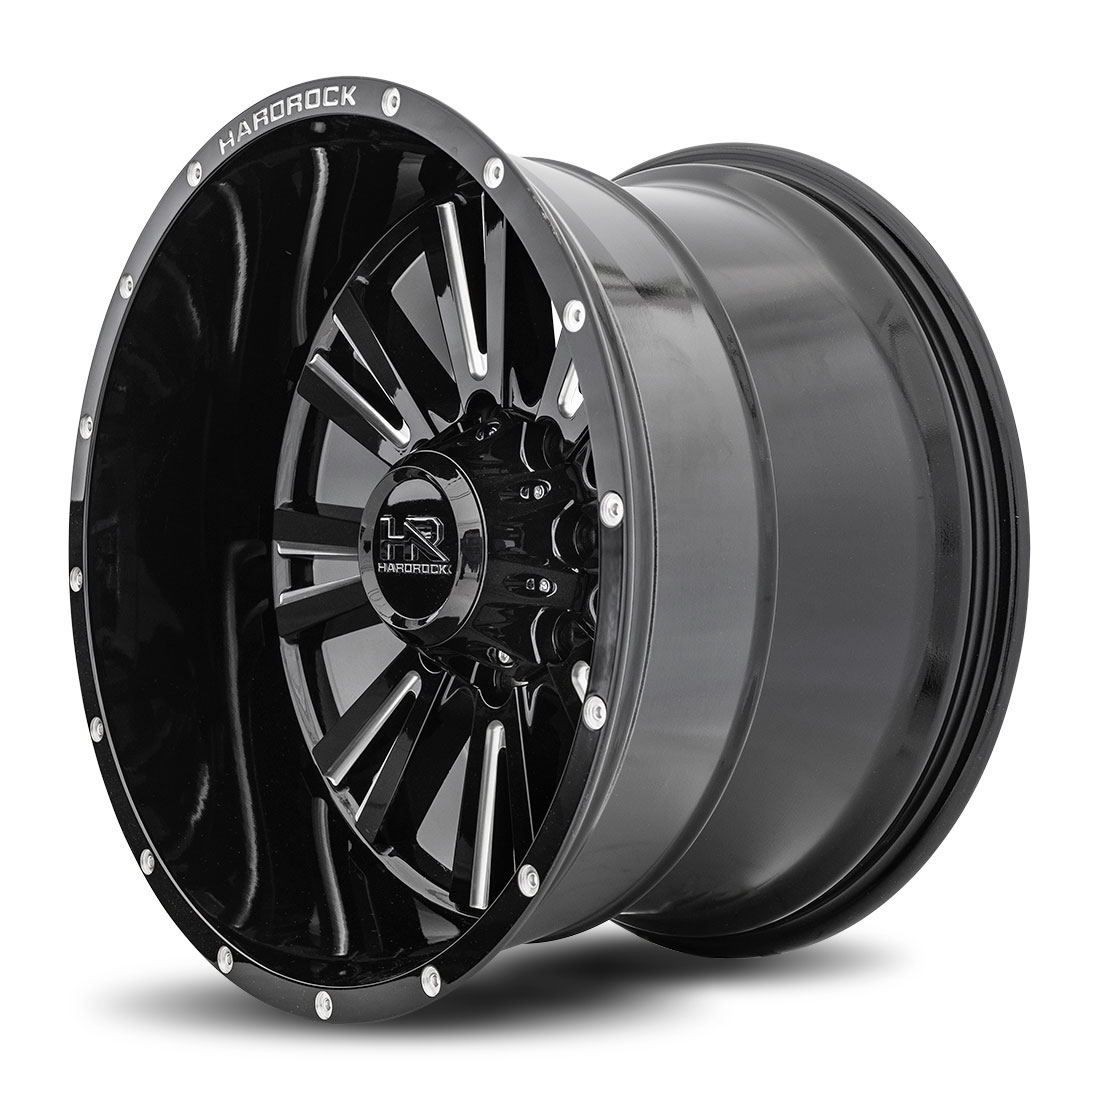 Hardrock Offroad Wheels H503 Spine-Xposed - Gloss Black Milled - 22x12